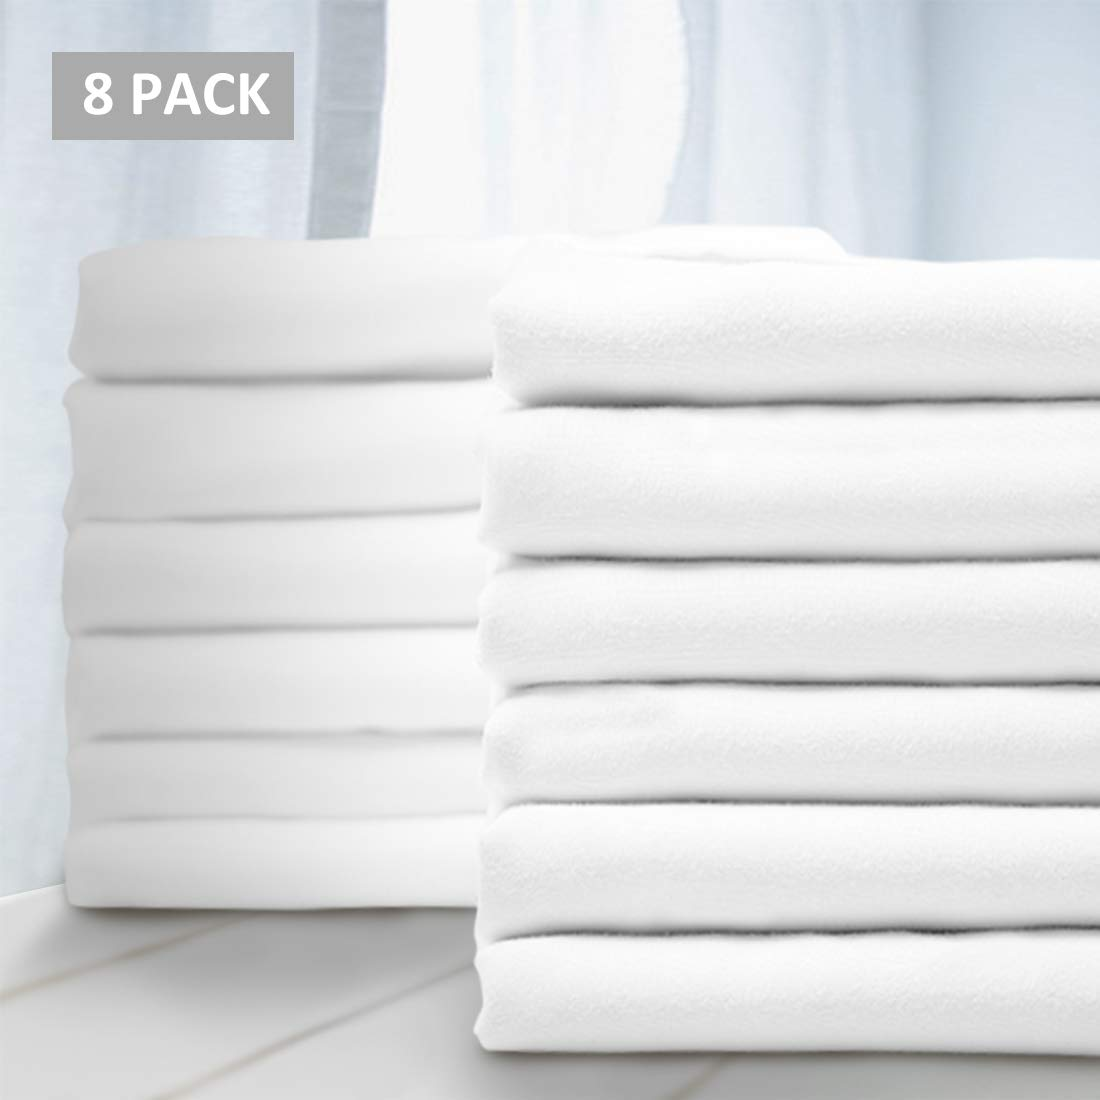 Balichun Premium Queen Pillowcase 8 Pack - Standard White - 1800 Thread Count - Soft Brushed Microfiber Hypoallergenic - Wrinkle Resistant - Tailoring Iron - Bulk Pillowcases Set of 8